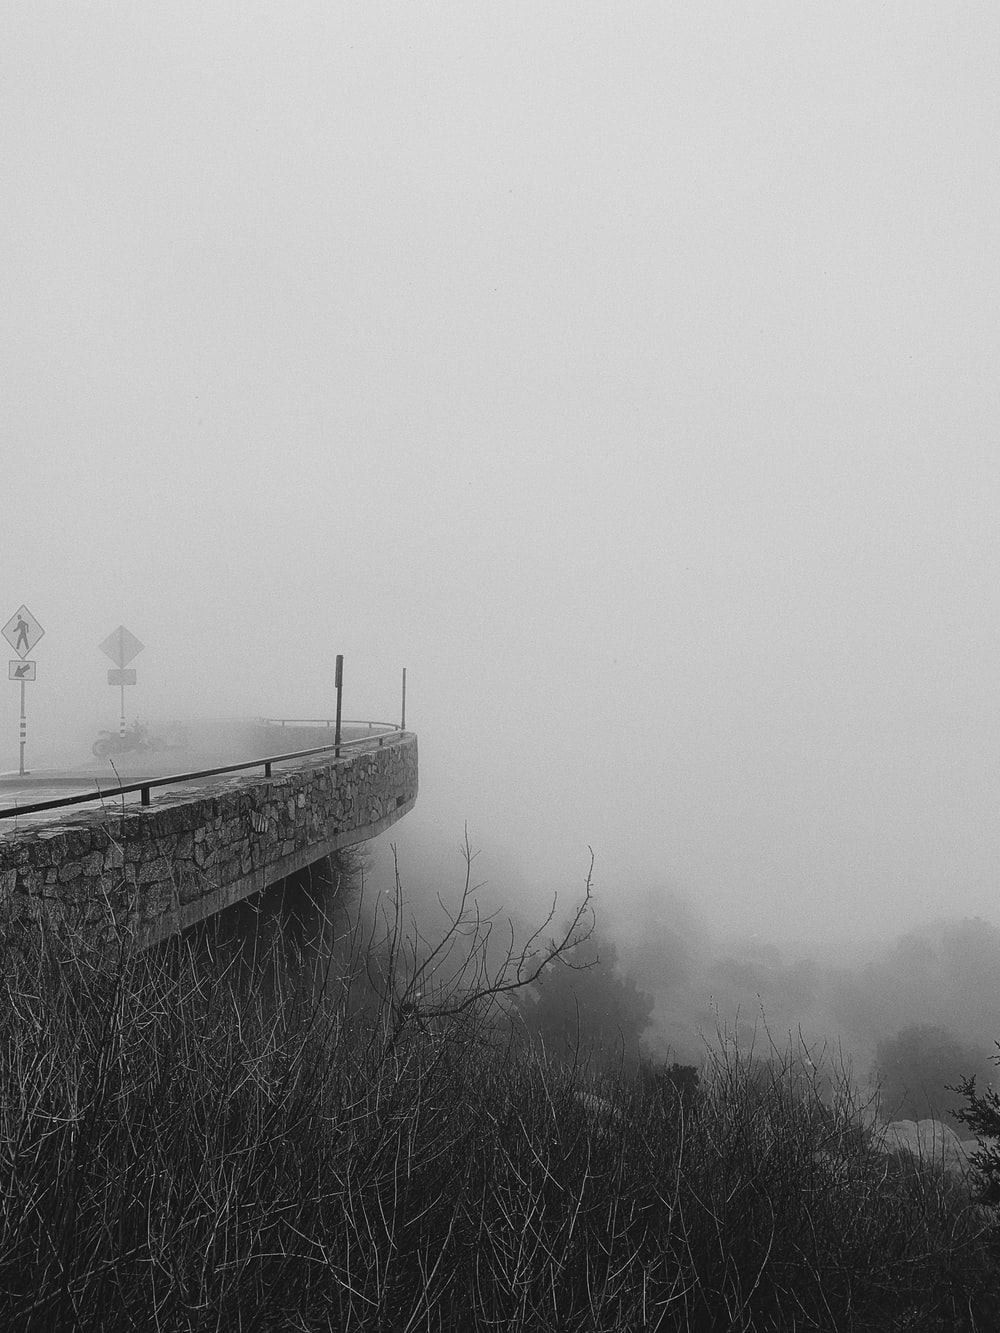 grayscale photo of person standing on bridge